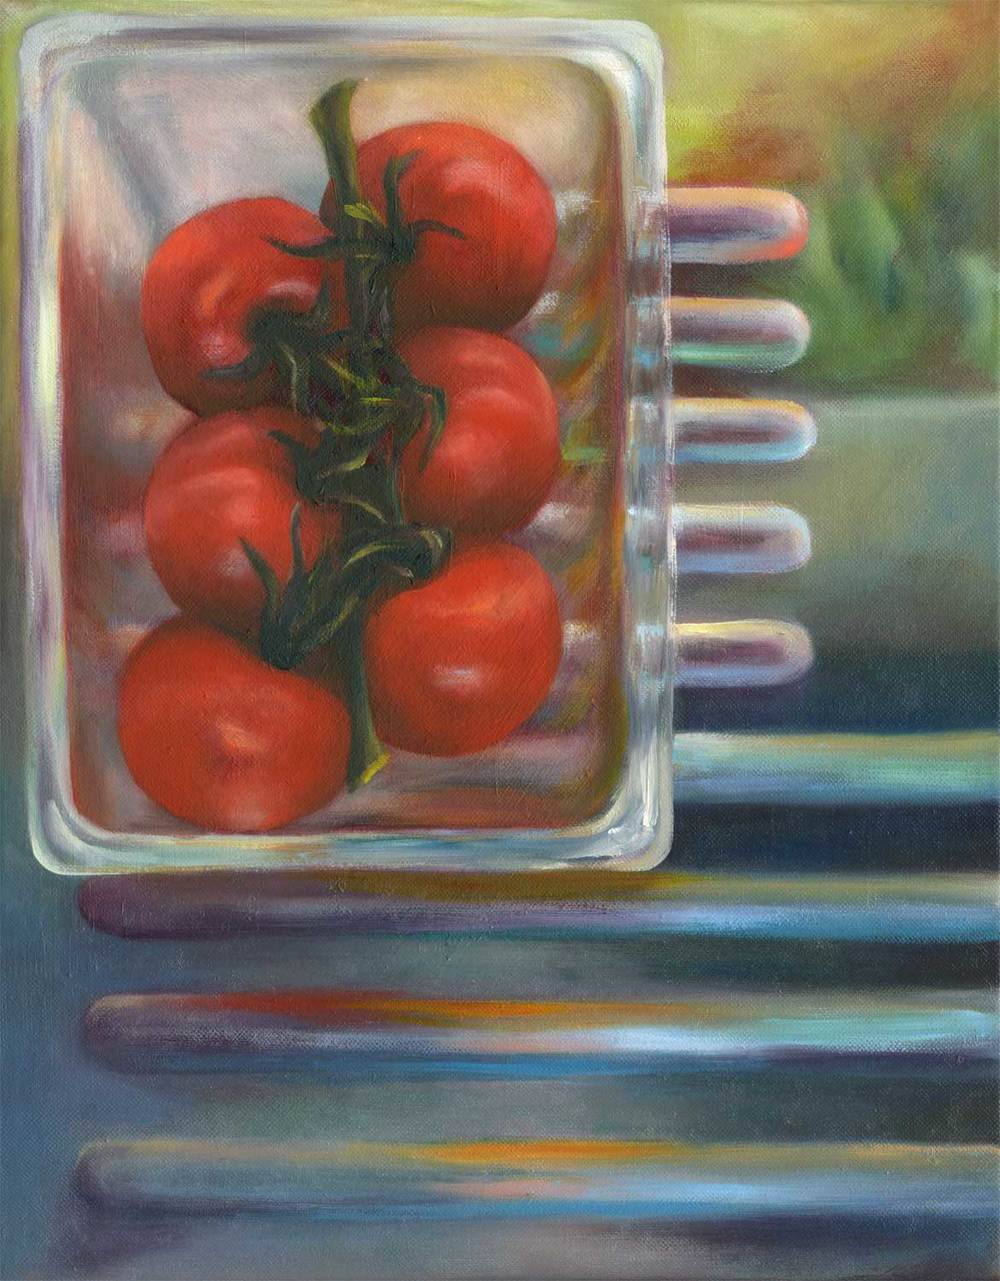 tomatoes-on-vine-fridge-salad-box-oil-painting-still-life.jpg